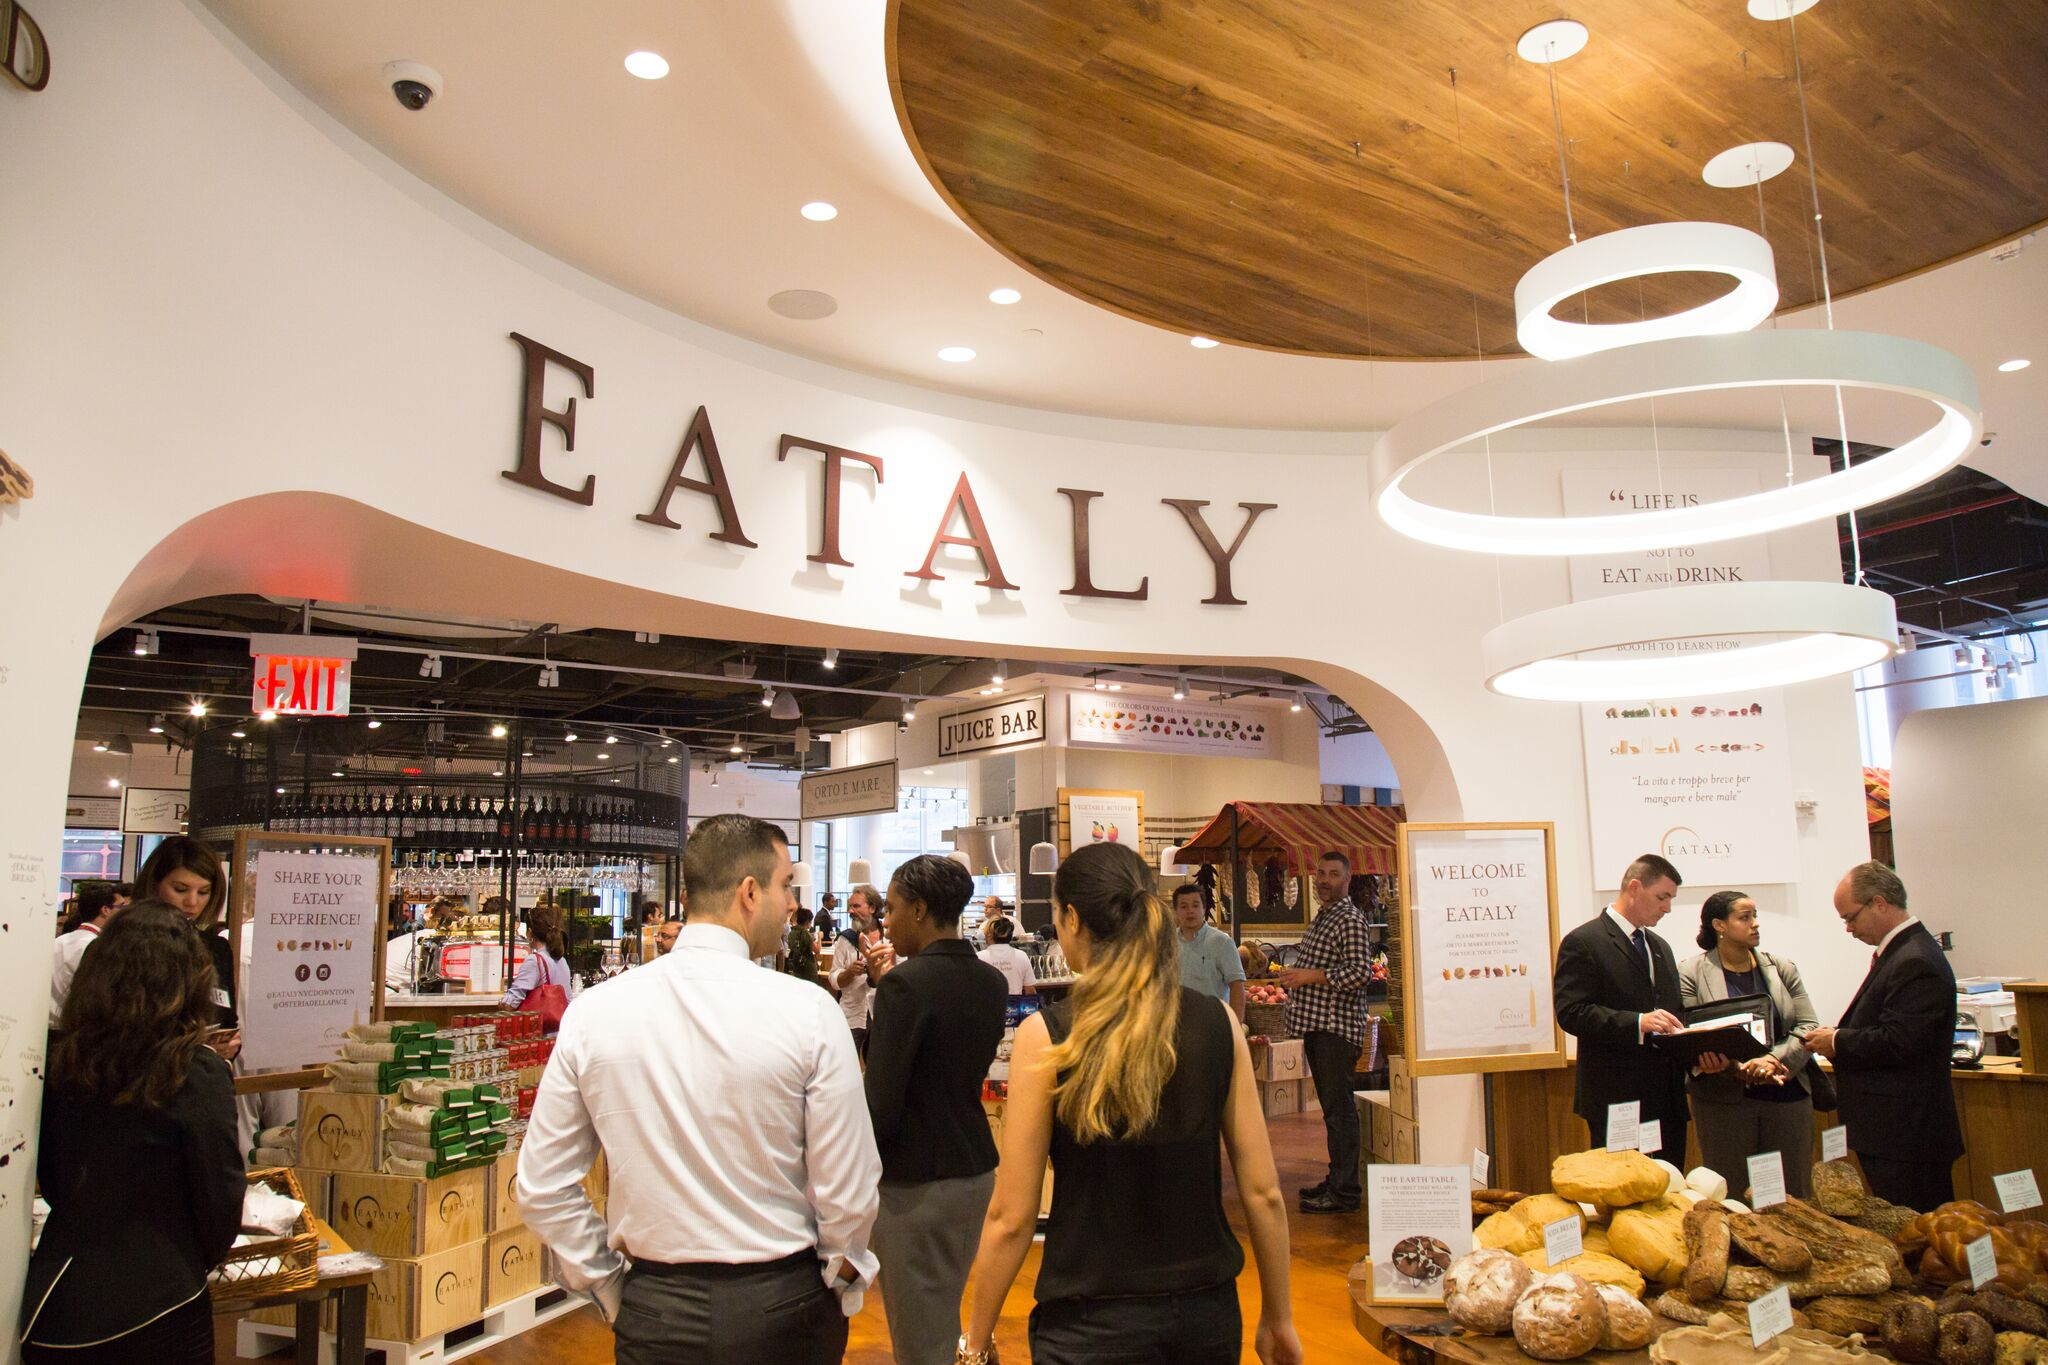 Eataly will open its second location in New York this month in the Financial District at 4 WTC